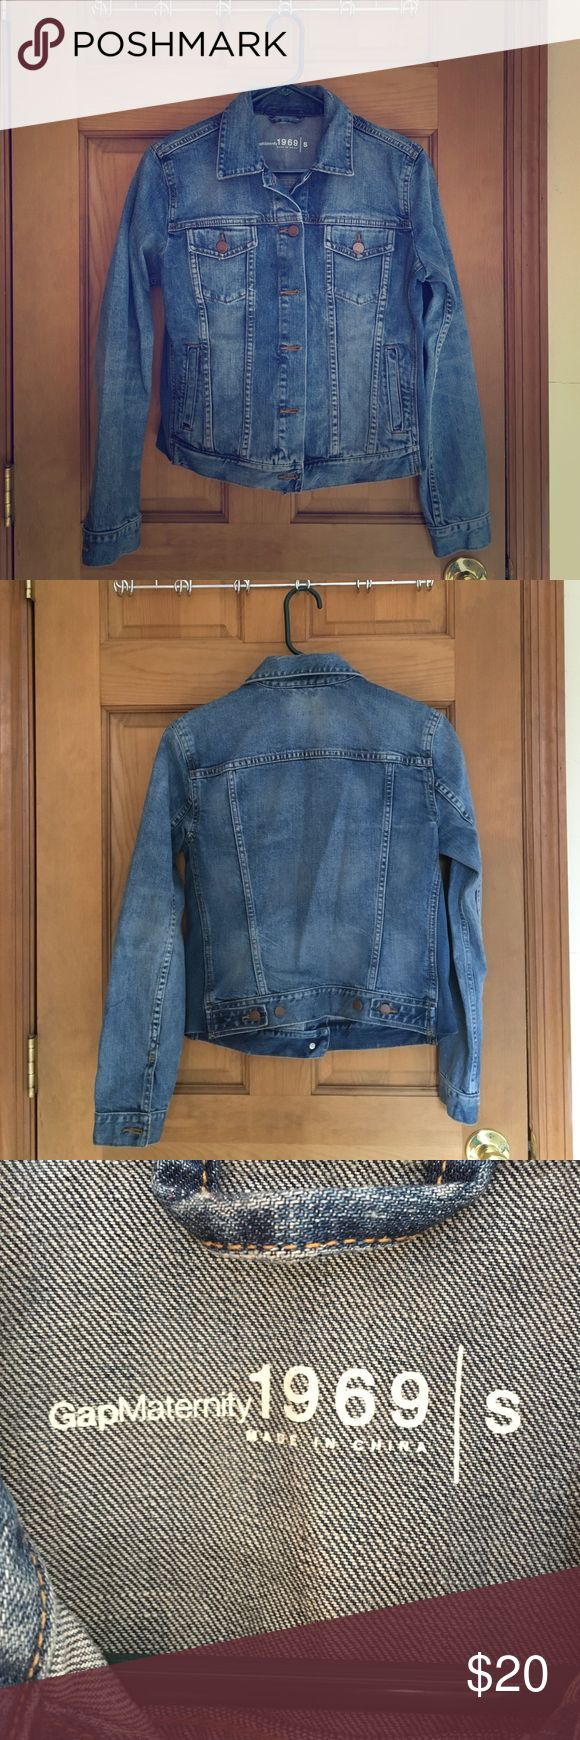 """GAP Maternity Denim Jacket, size small Only worn once, no sign of wear. Subtle distressed details throughout, and intentionally """"worn"""" style. It's a maternity jacket, so the sides have very subtle stretchy panels (see fourth picture). It fits like a regular oversized denim jacket if you aren't pregnant - super comfortable! GAP Jackets & Coats Jean Jackets"""